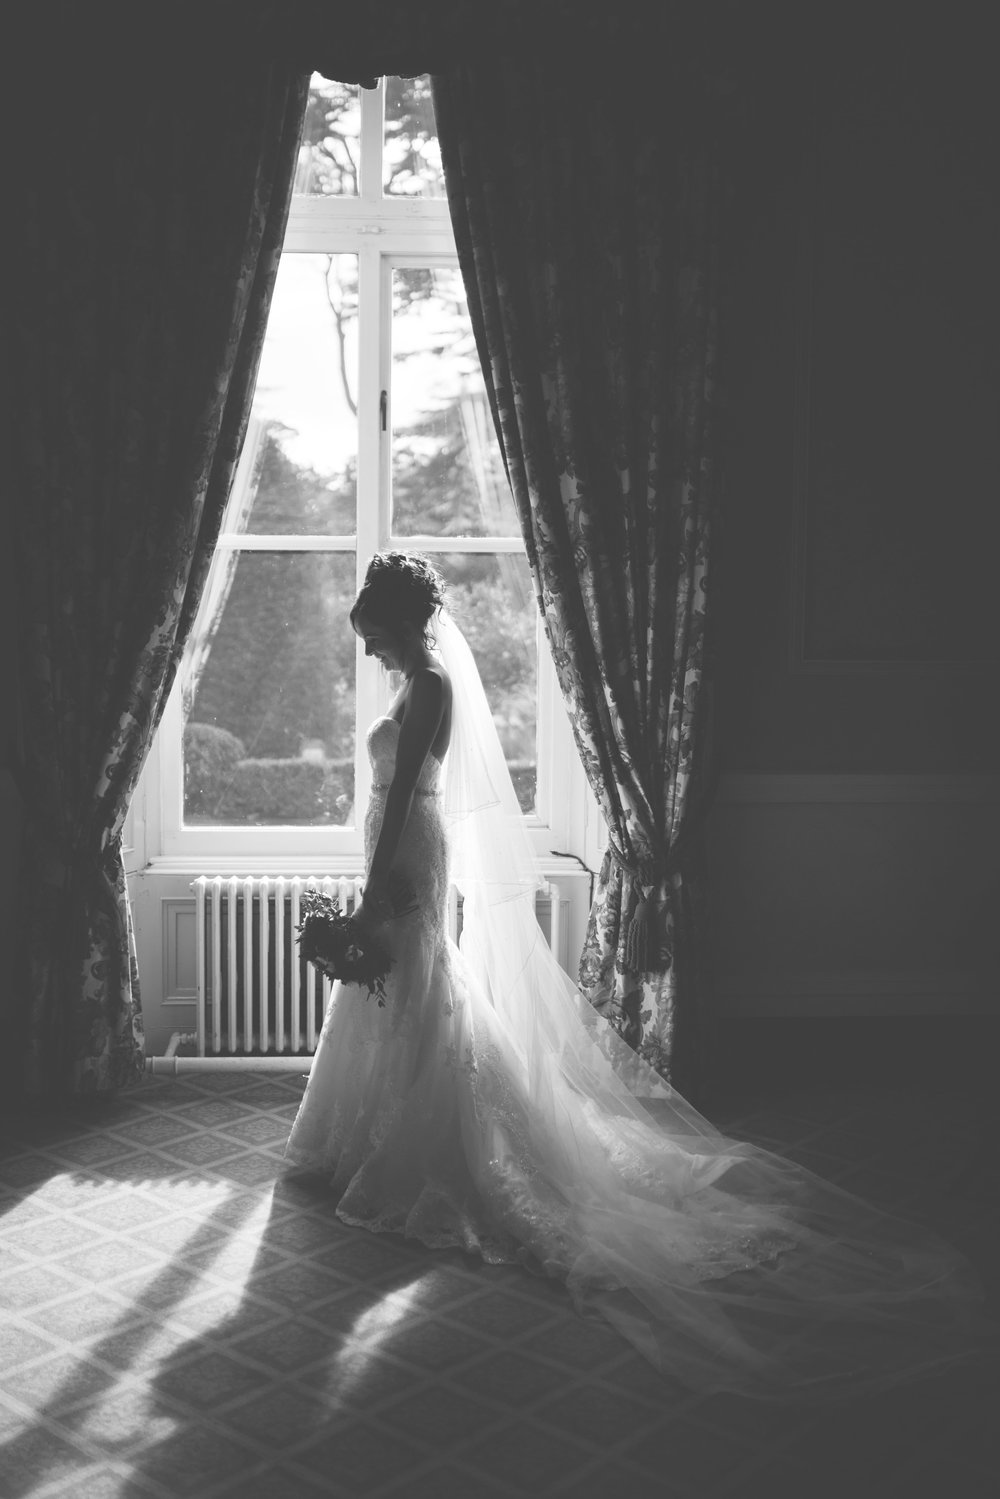 Northern Ireland Wedding Photographer | Brian McEwan Photography | Affordable Wedding Photography Throughout Antrim Down Armagh Tyrone Londonderry Derry Down Fermanagh -45.jpg